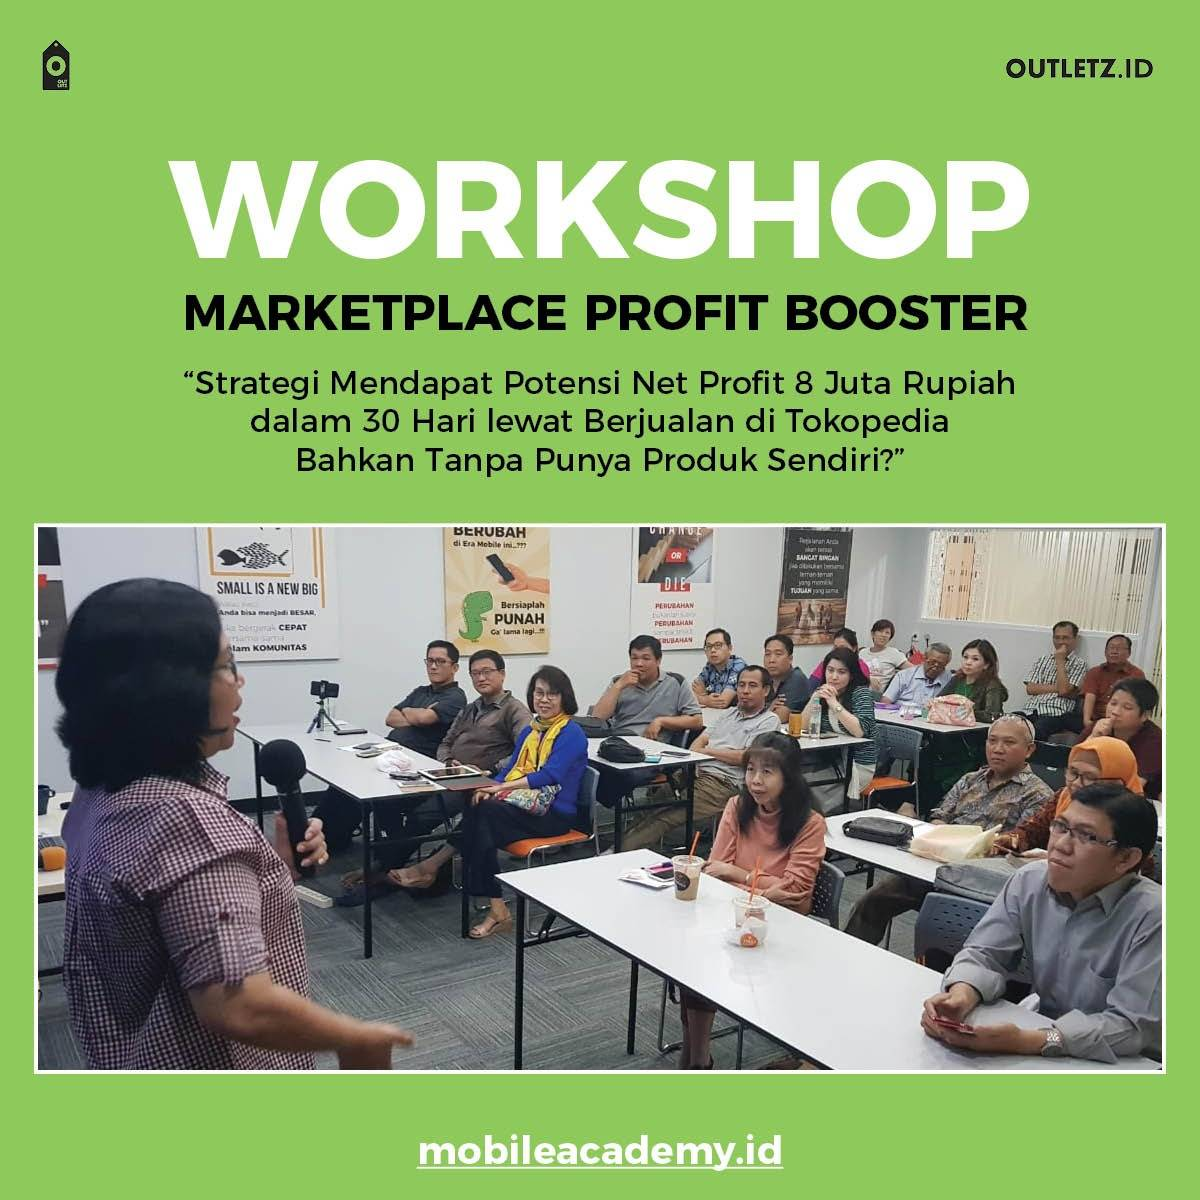 Workshop Marketplace Profit Booster1